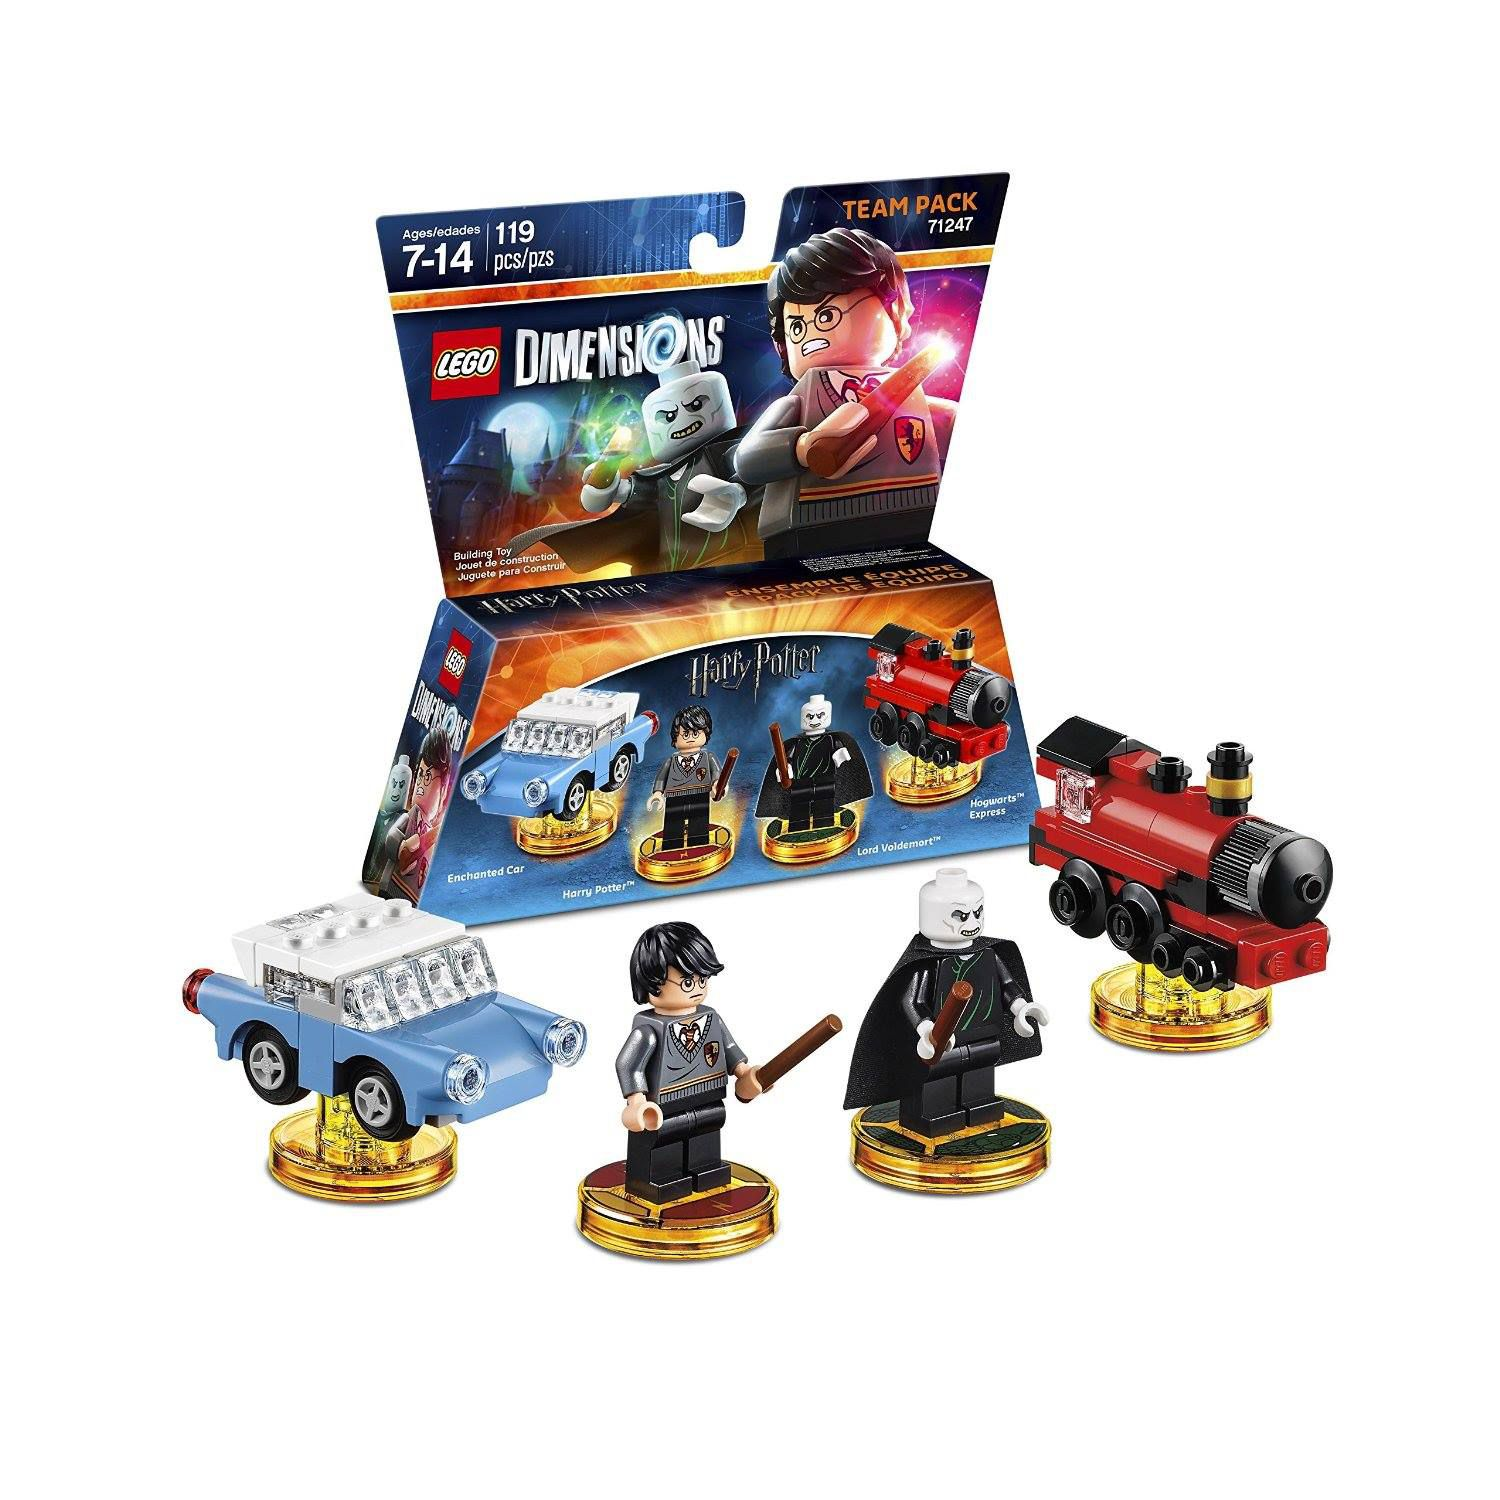 LEGO Dimensions 71247 Team Pack Harry Potter LEGO_DIMENSIONS_71247_Harry-Potter-03.jpg